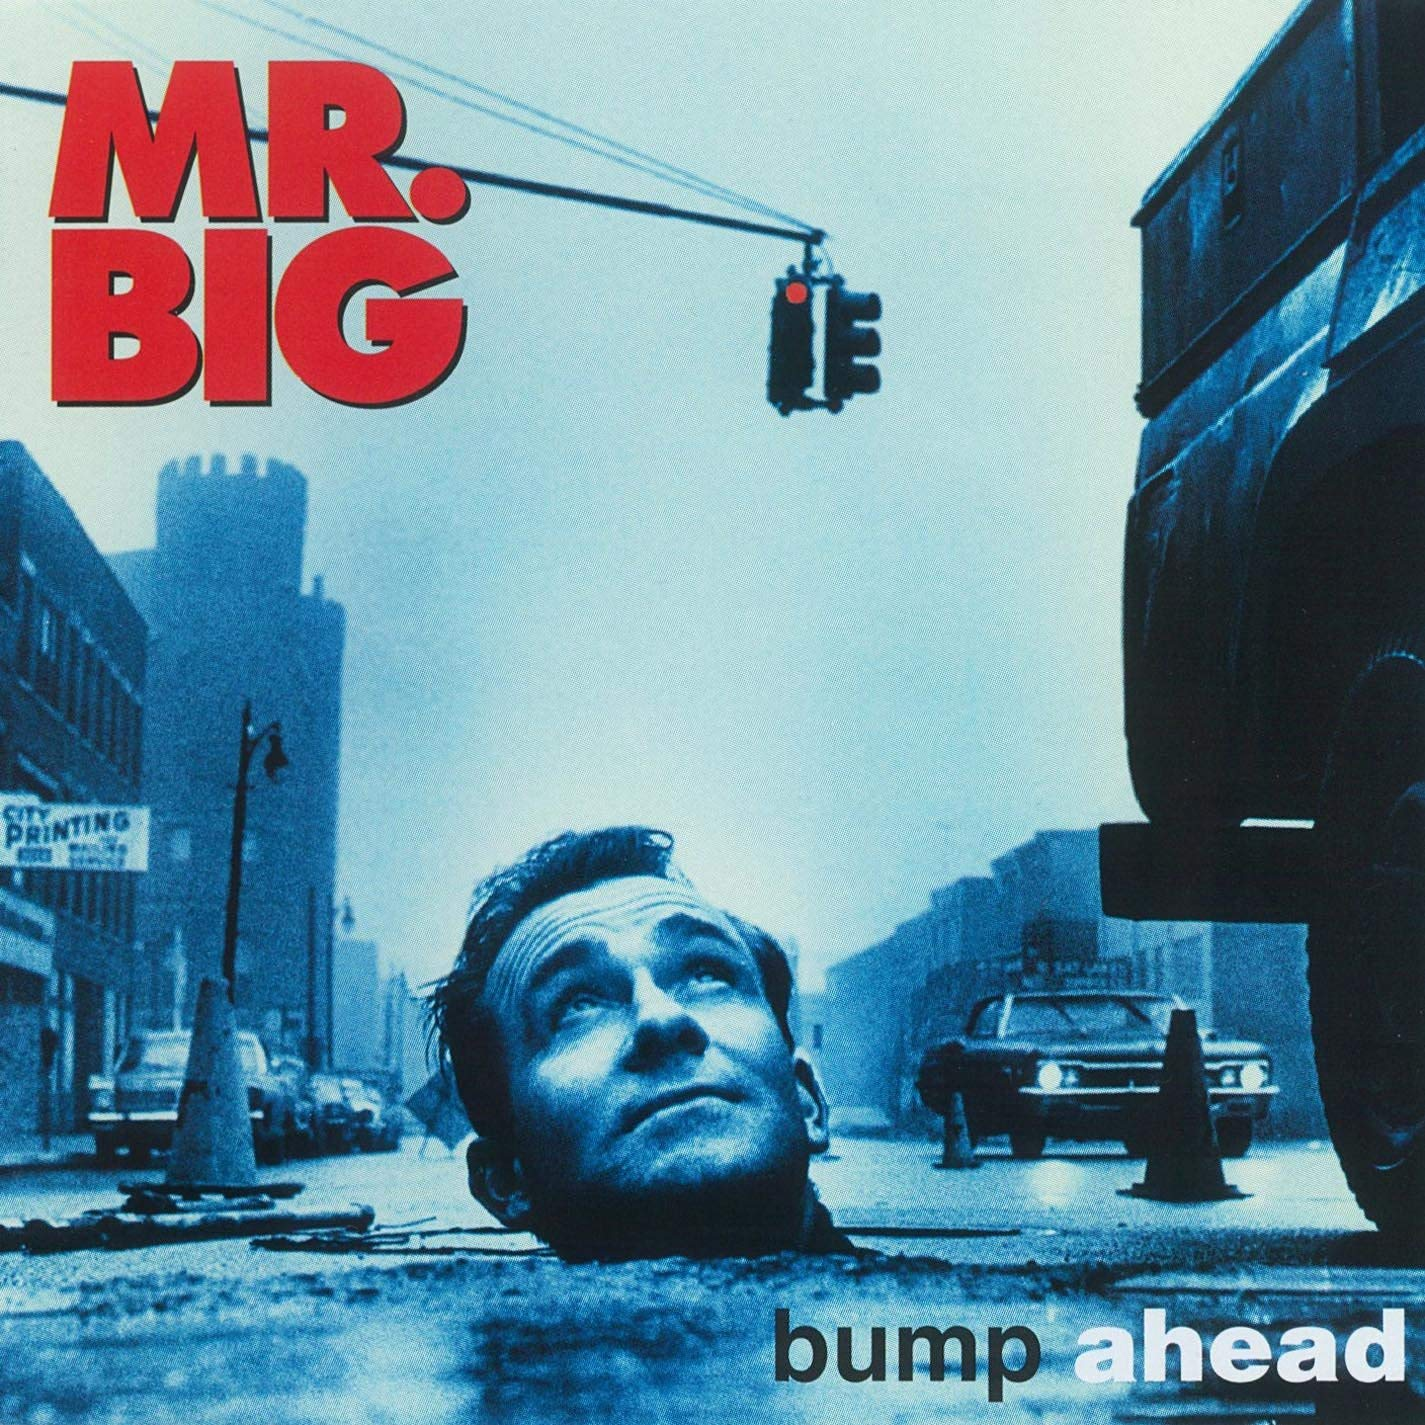 [90's] Mr. Big - Wild World (1993) Mr.%20Big%20-%20Bump%20Ahead-